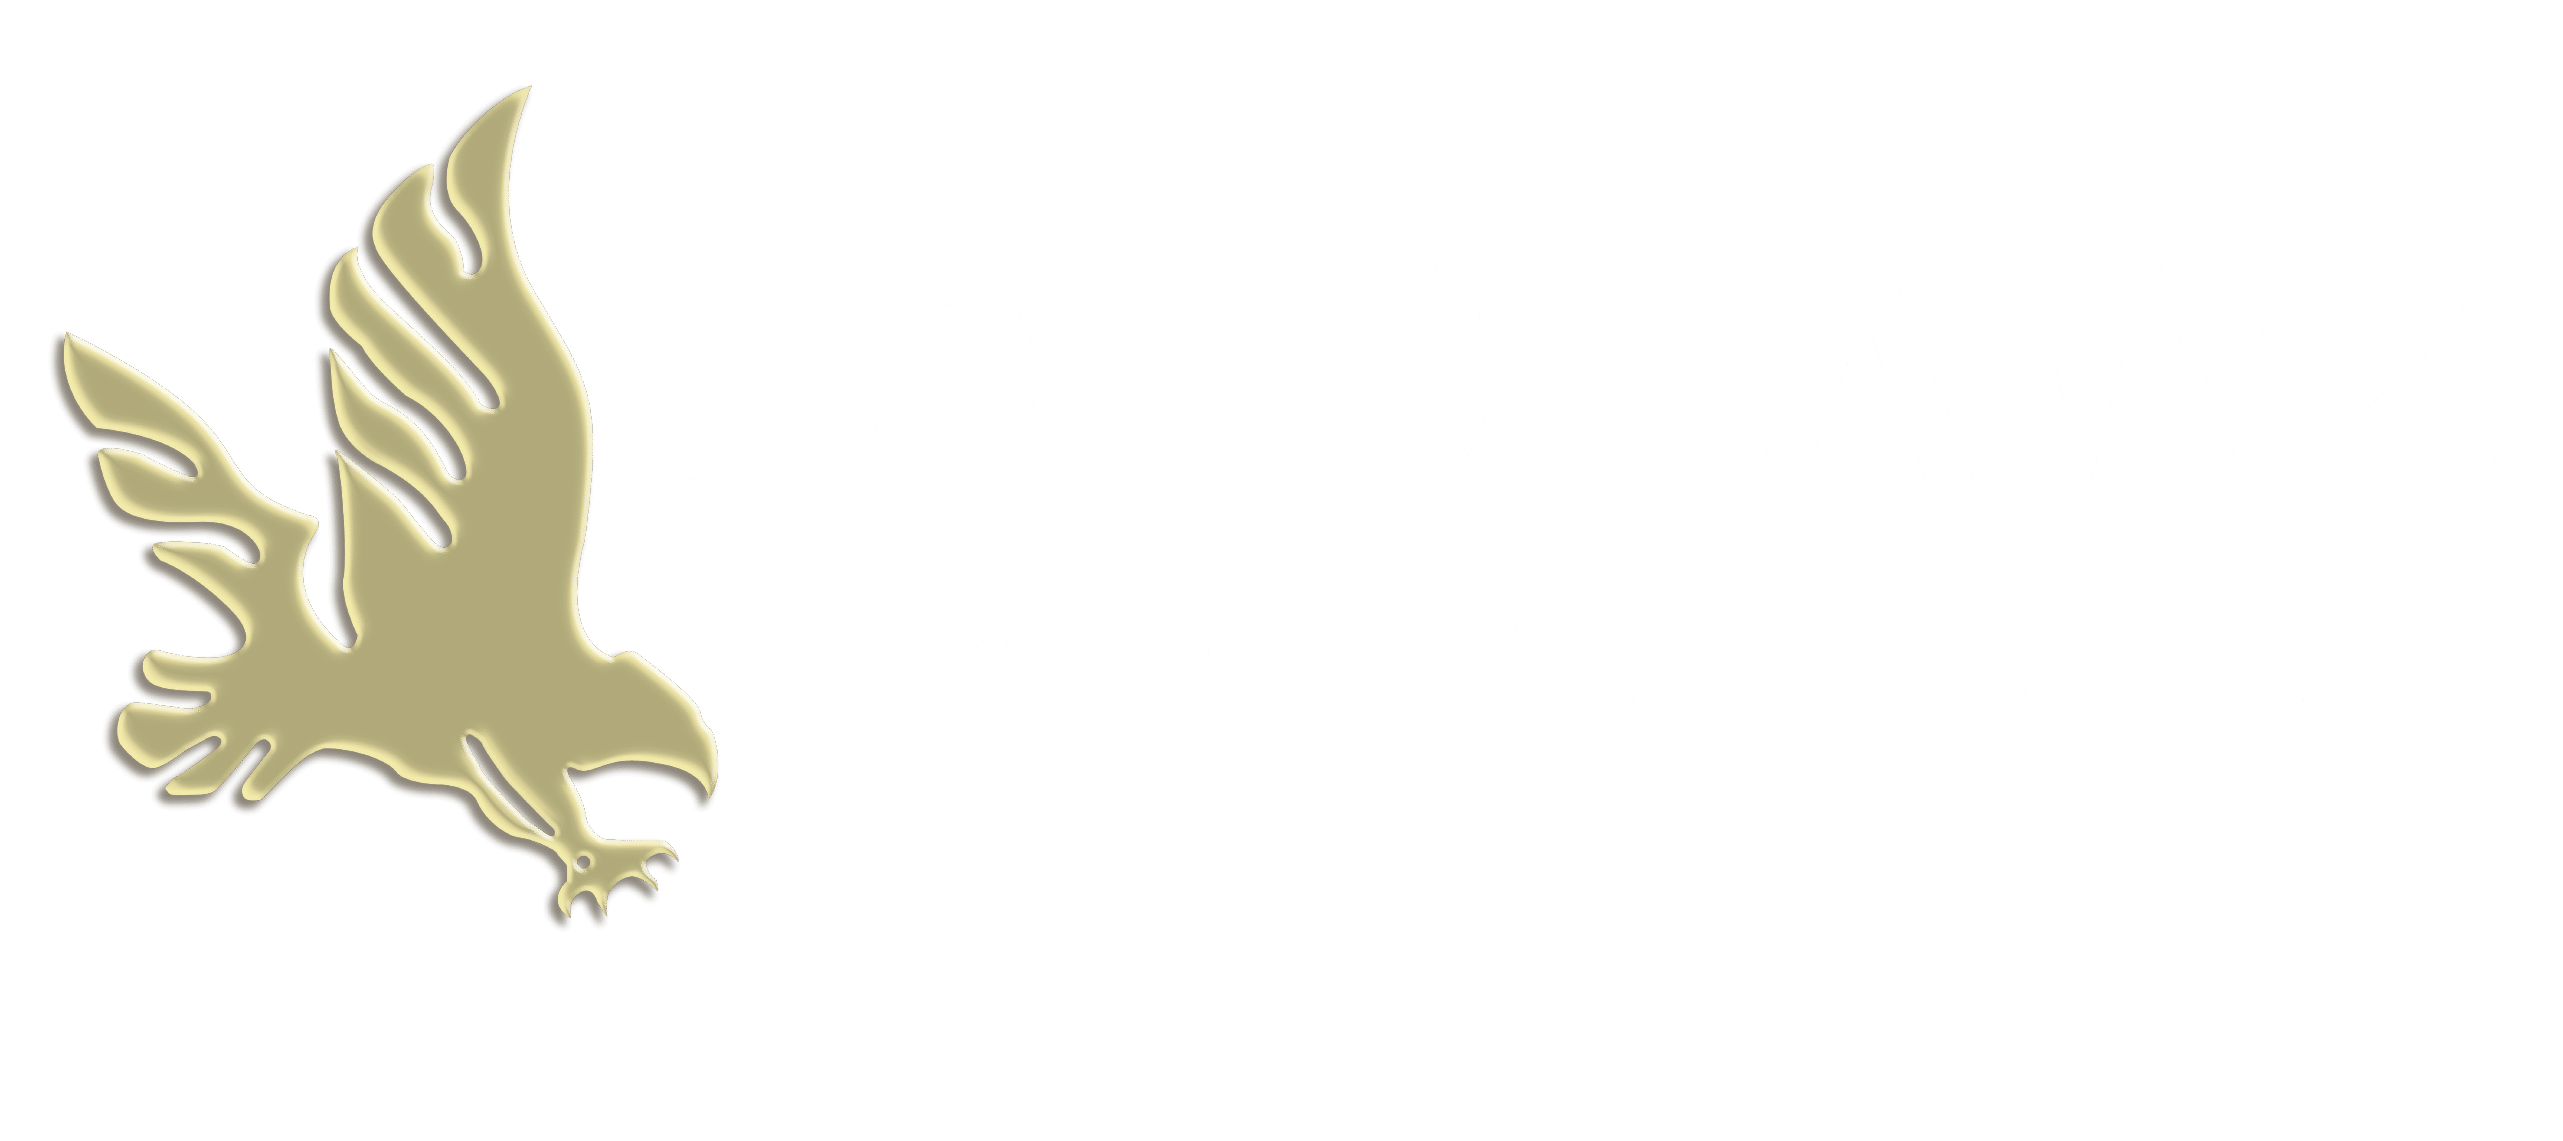 Goldhawk International